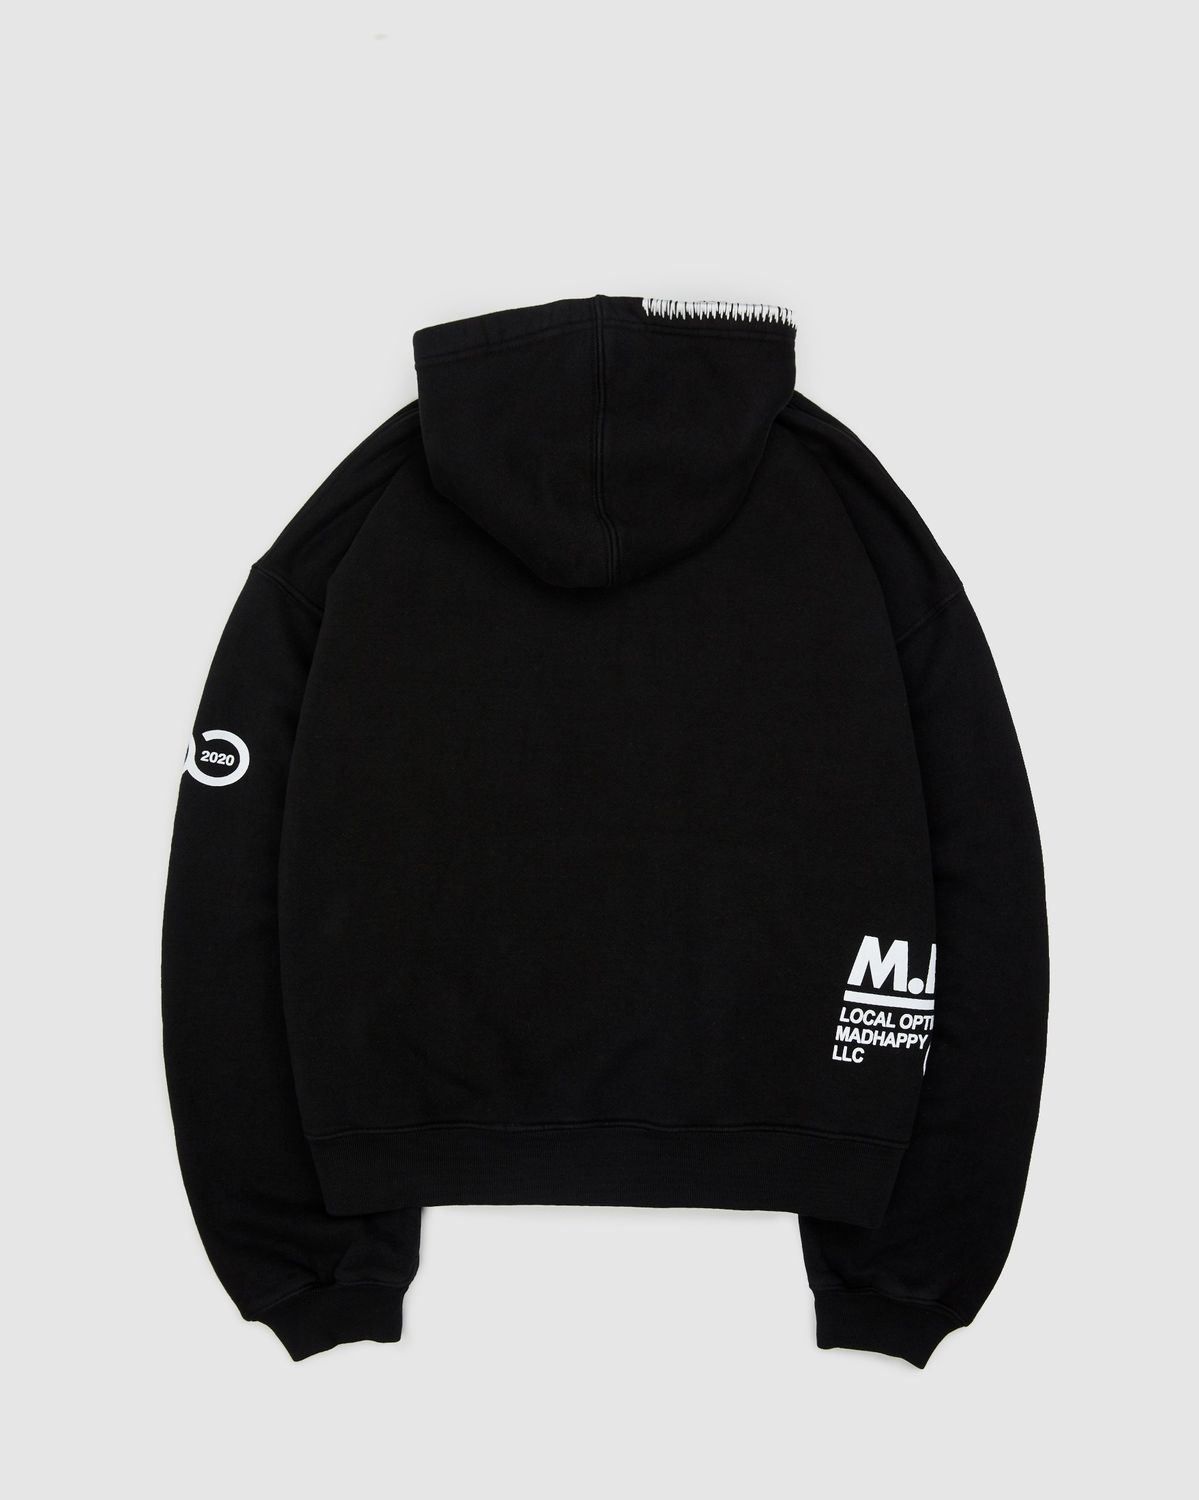 Colette Mon Amour x Madhappy  — Hoodie Black - Image 2